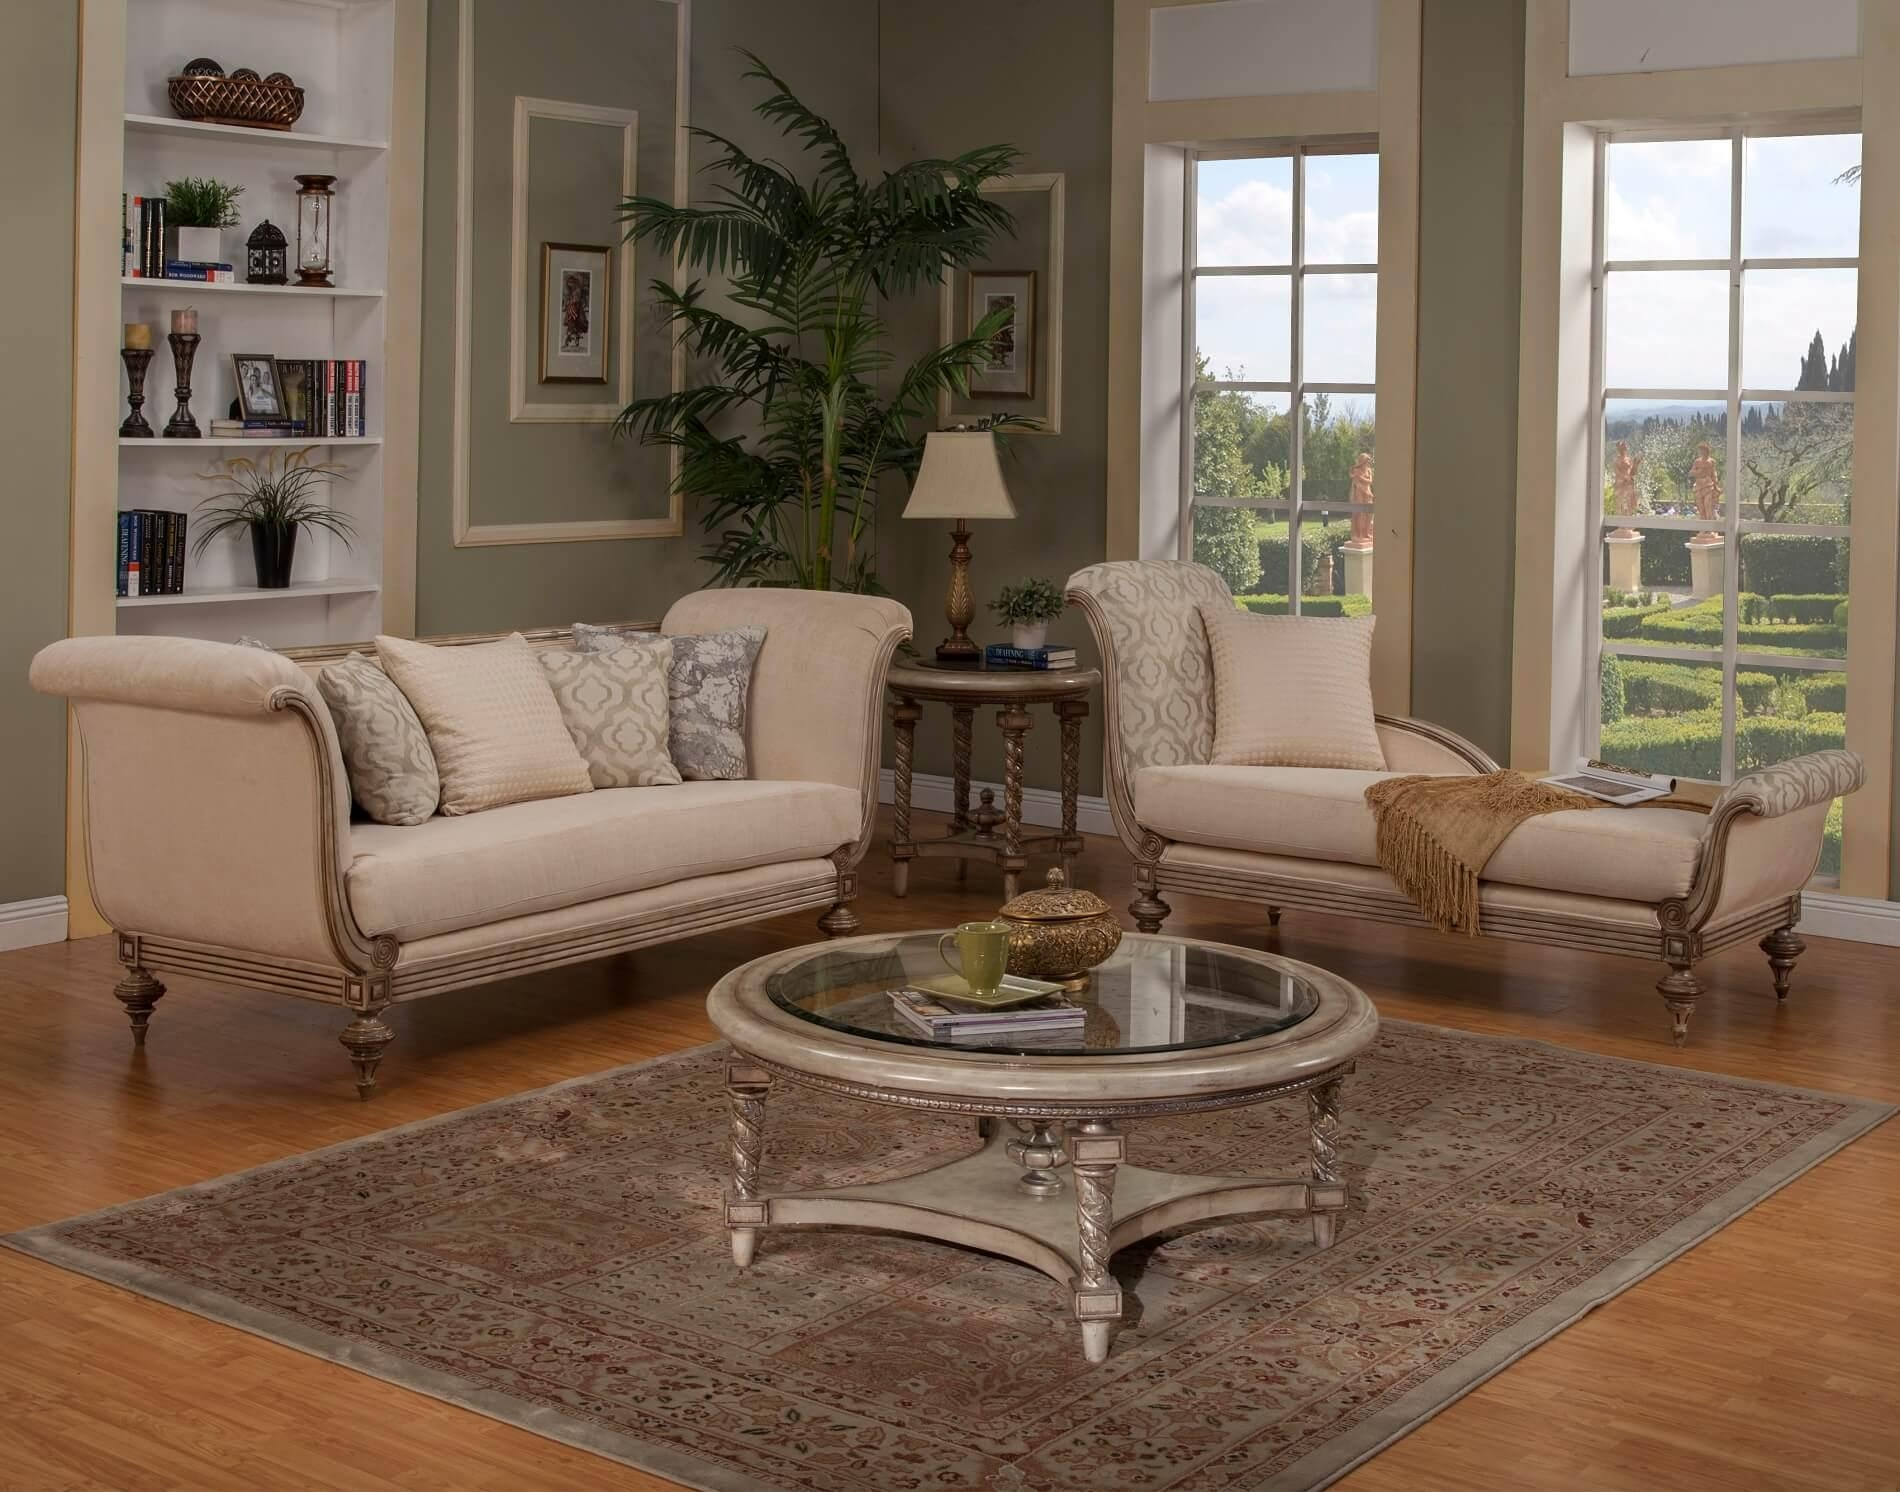 Wood Trim Sofa Coco Sofa In Sand Fabric With Wood Leg Trim Within Sofas And Chaises Lounge Sets (View 18 of 20)